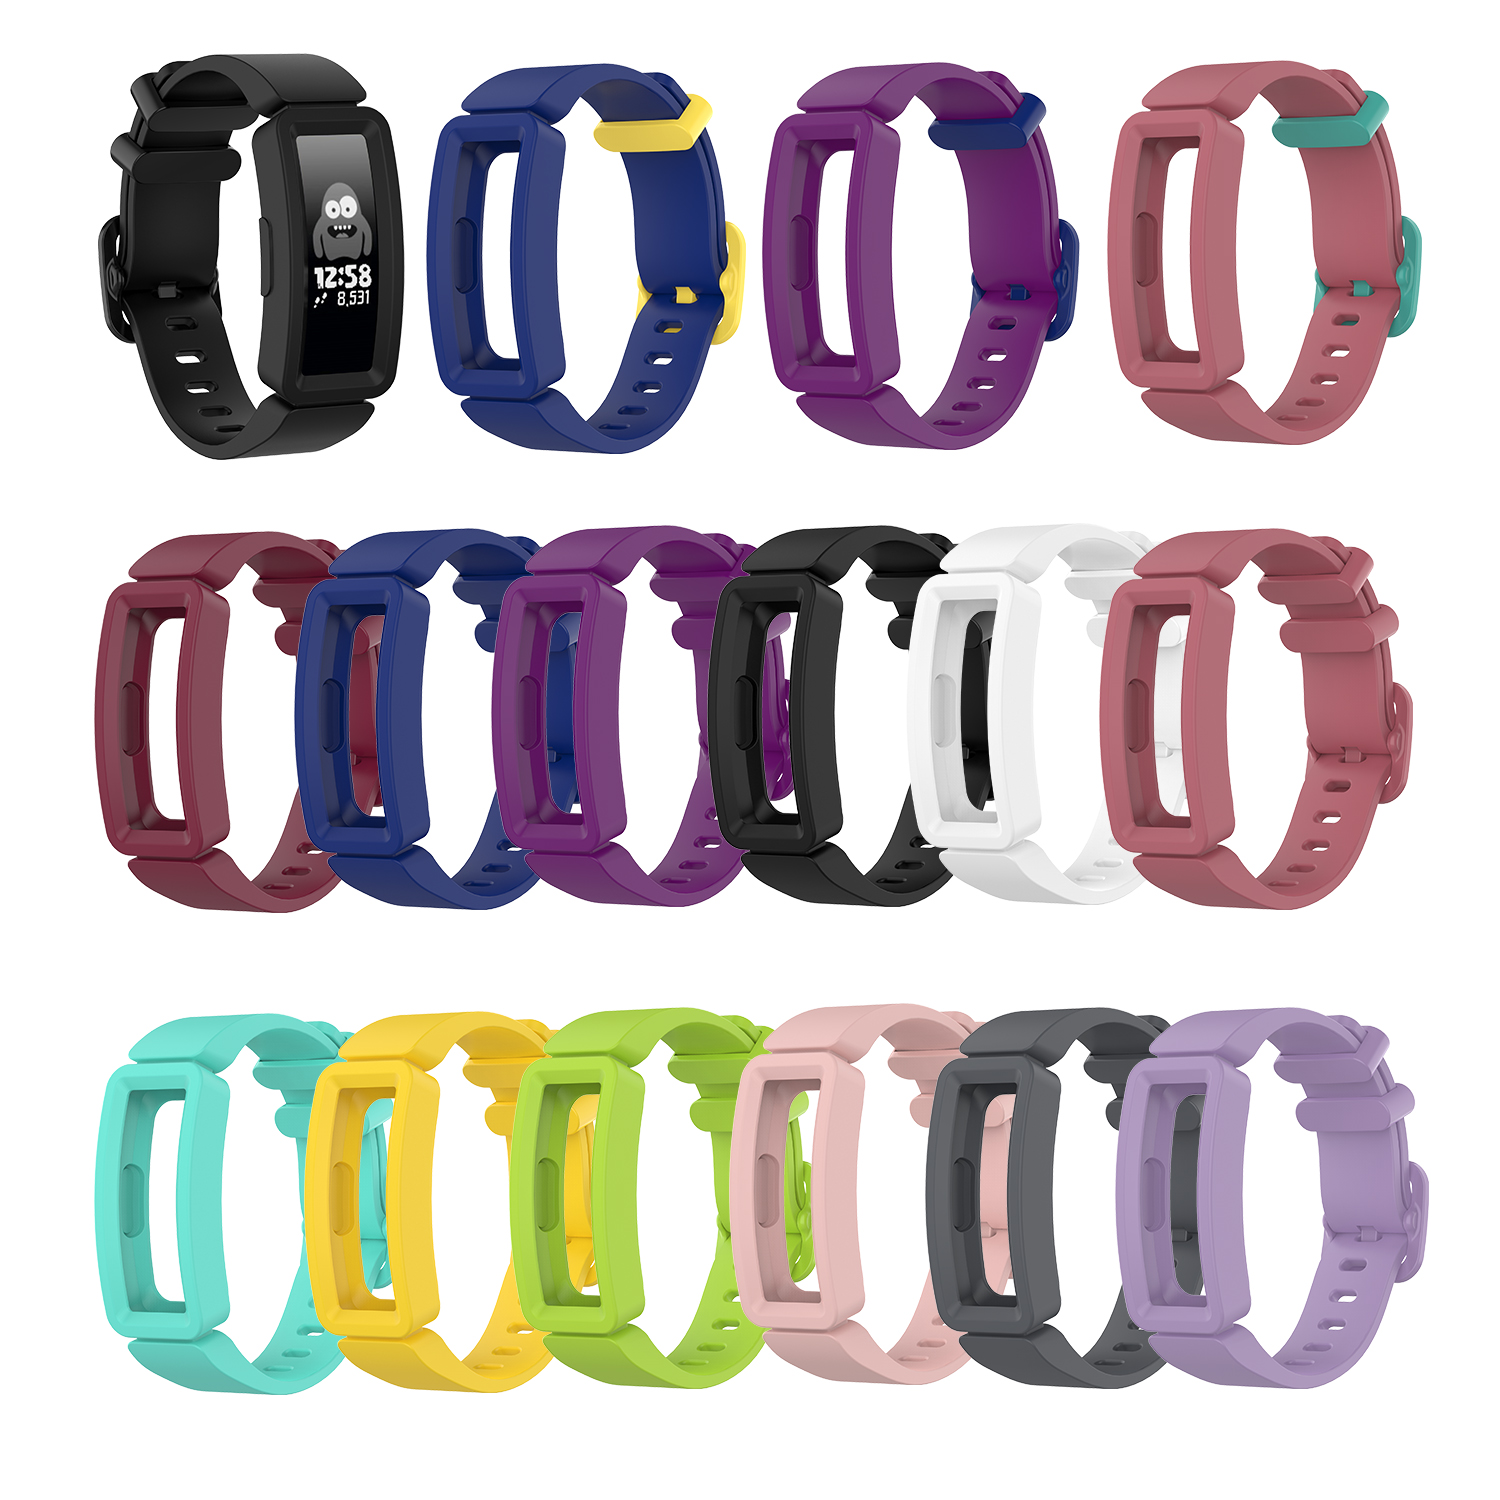 Replacement Classic Silicone Band Strap Wristband Bracelet For Fitbit Ace 2 Kids Watch Band For Inspire/inspire HR Watch Band